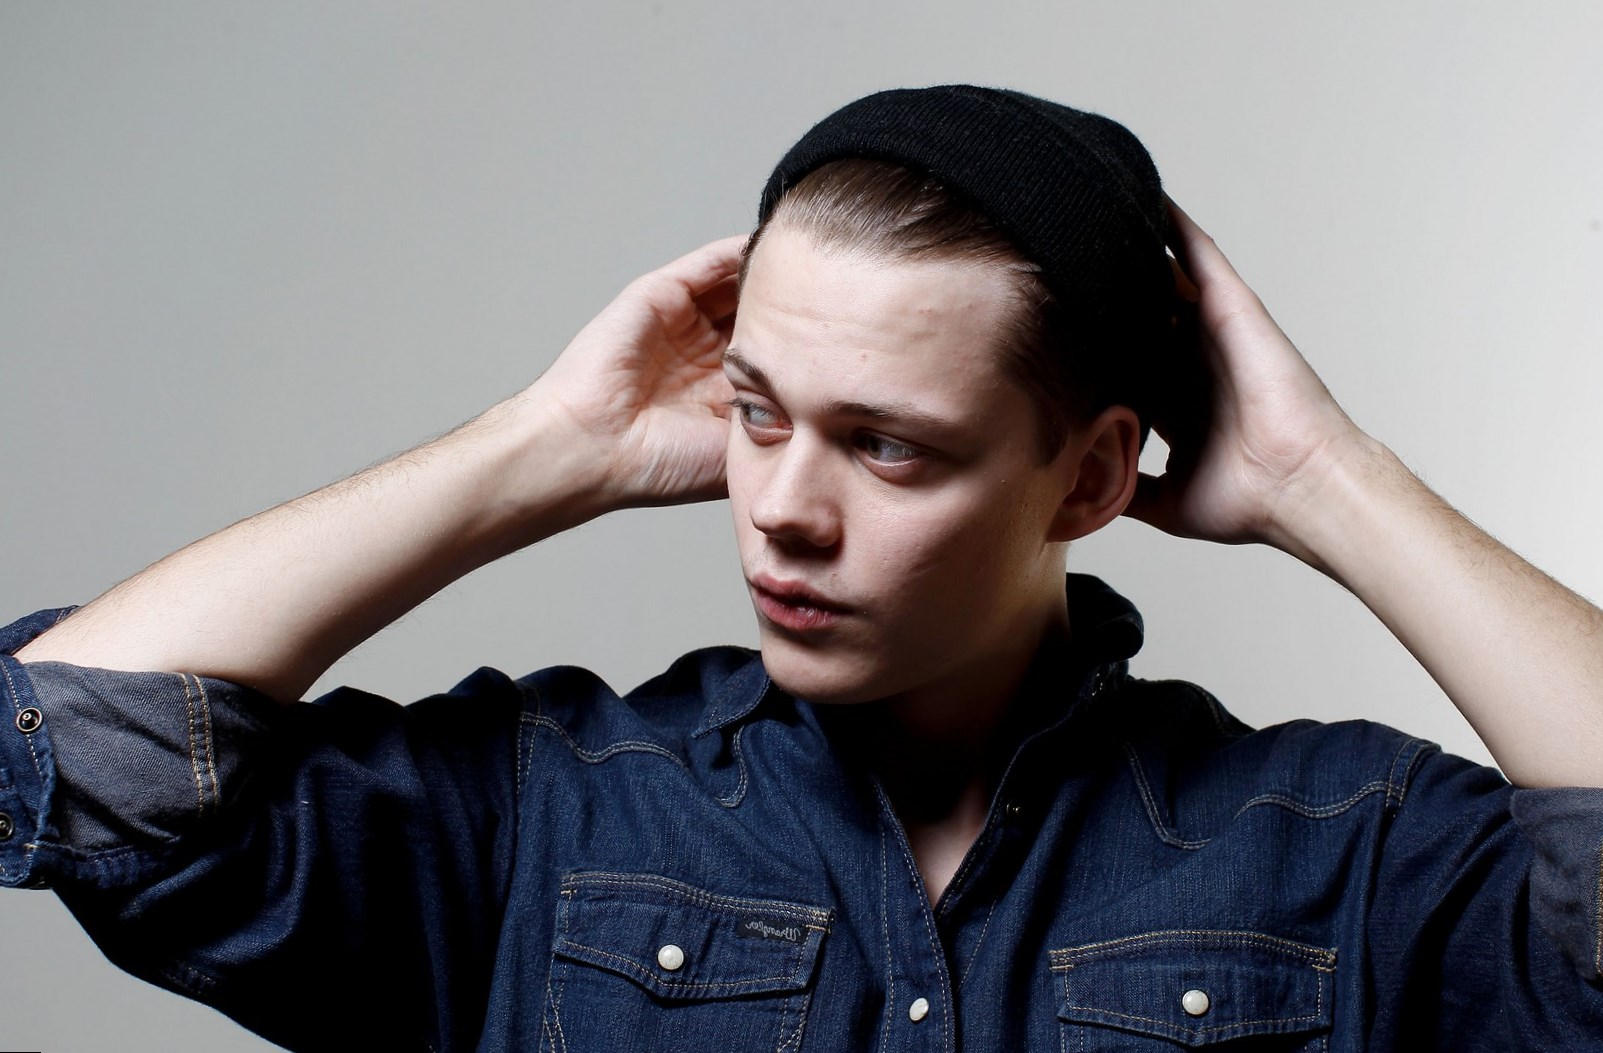 Bill Skarsgard body measurements